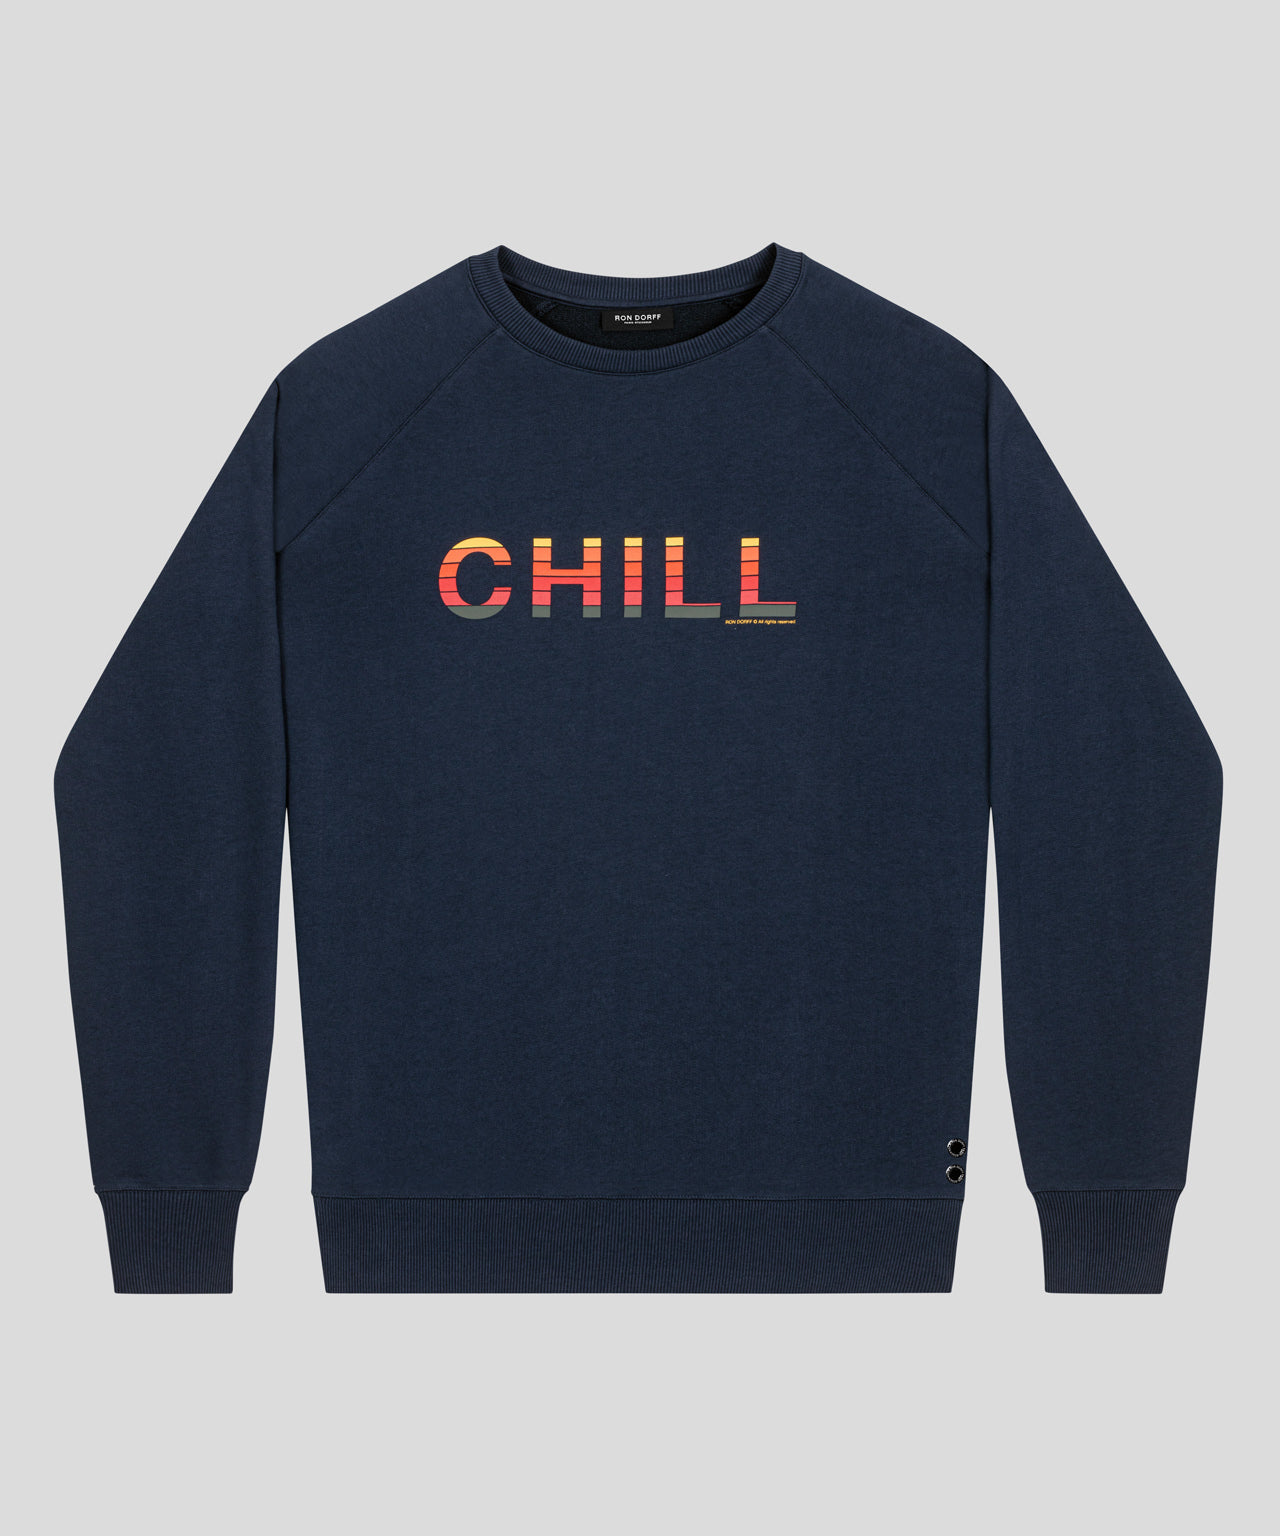 Sweatshirt CHILL - navy